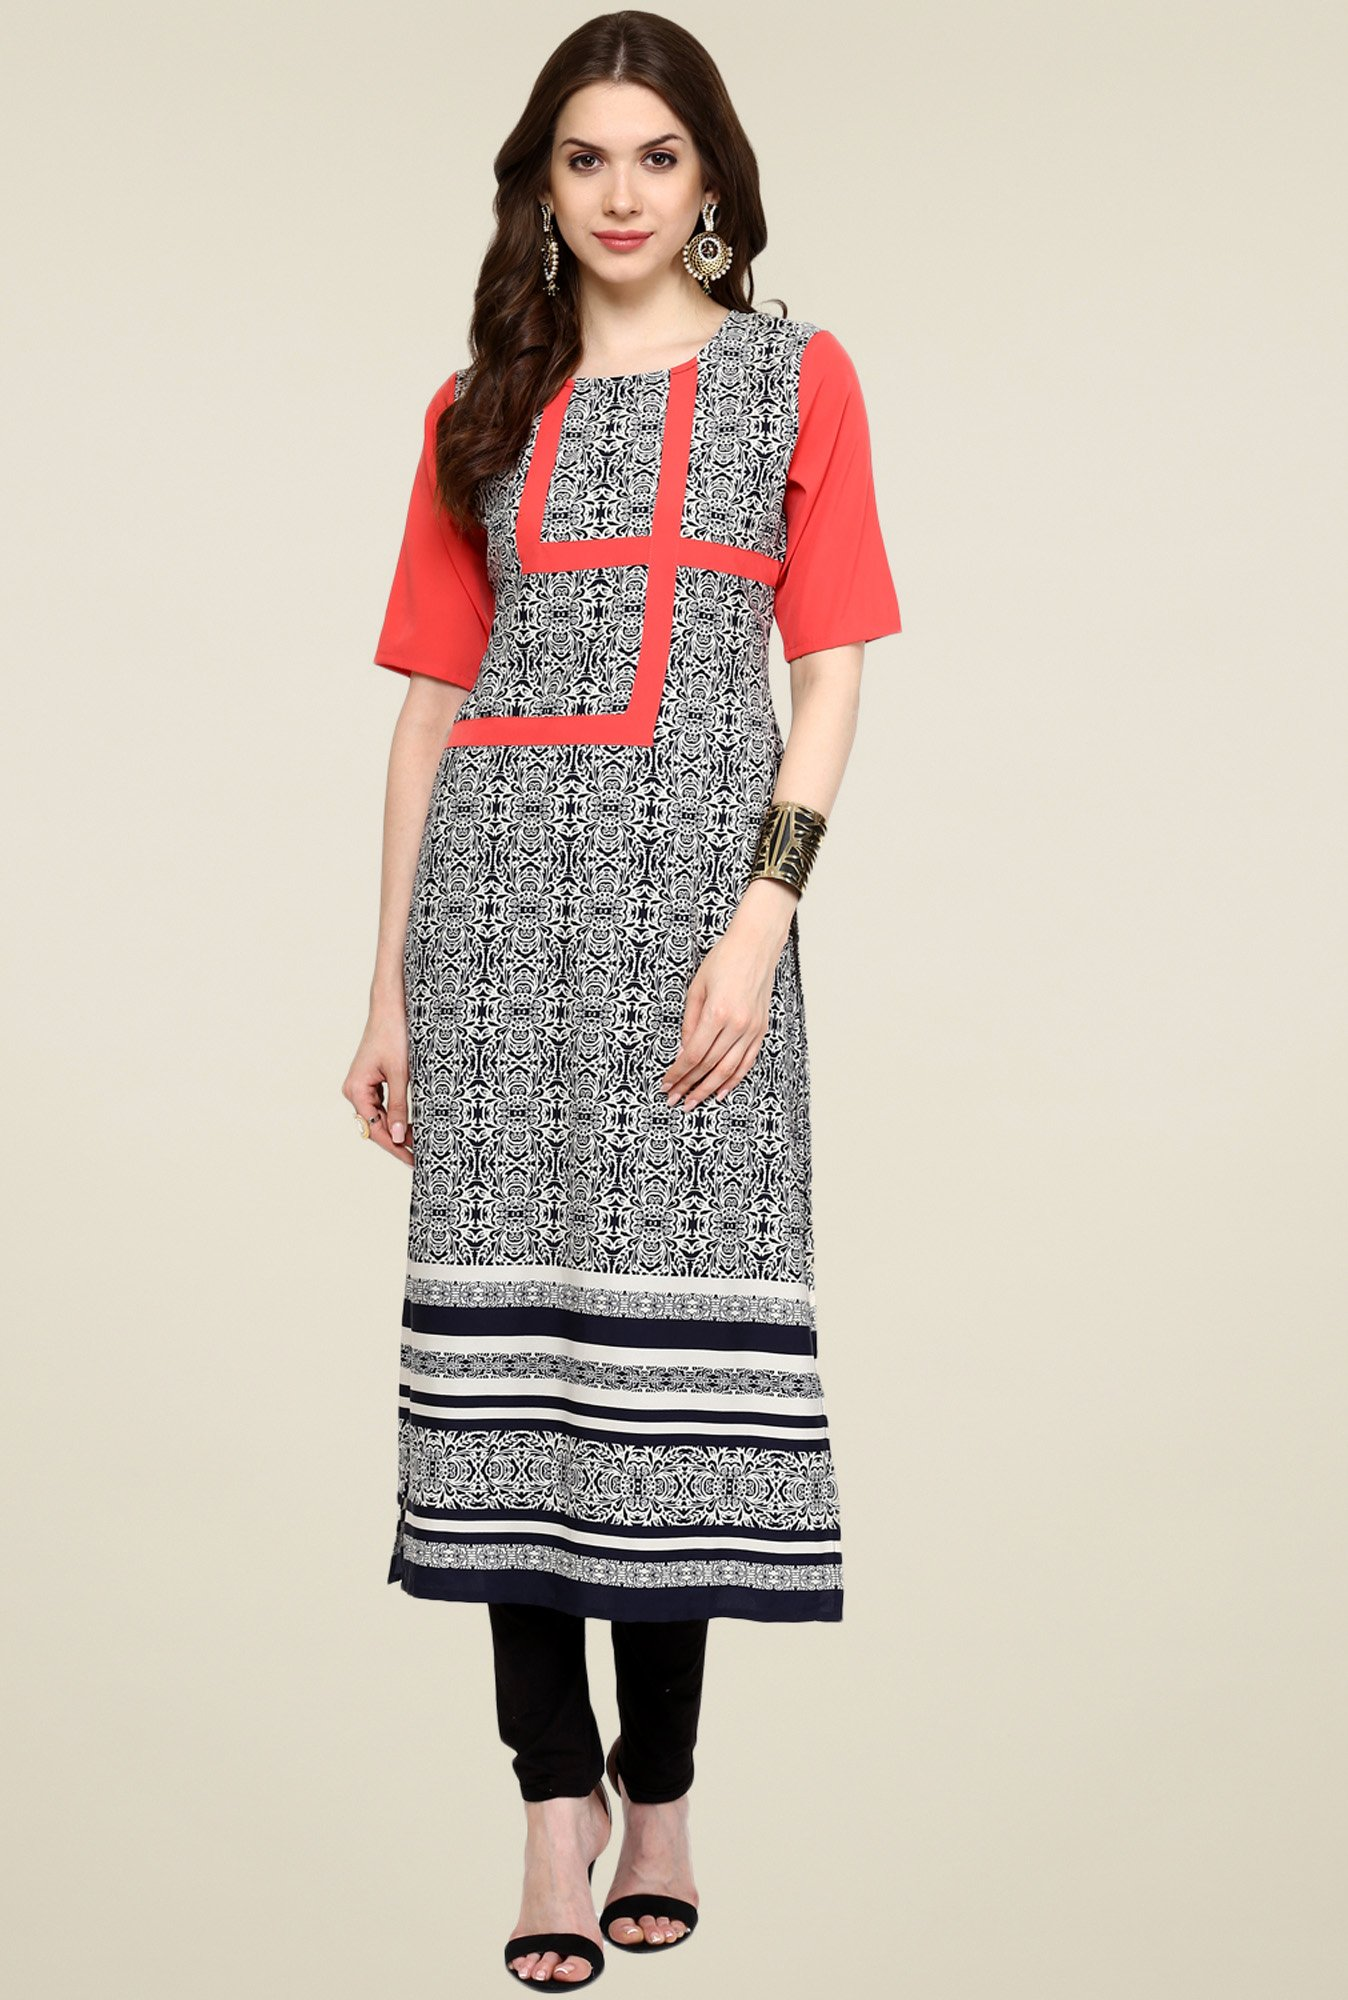 Pannkh Coral & Black Printed Elbow Sleeves Kurti